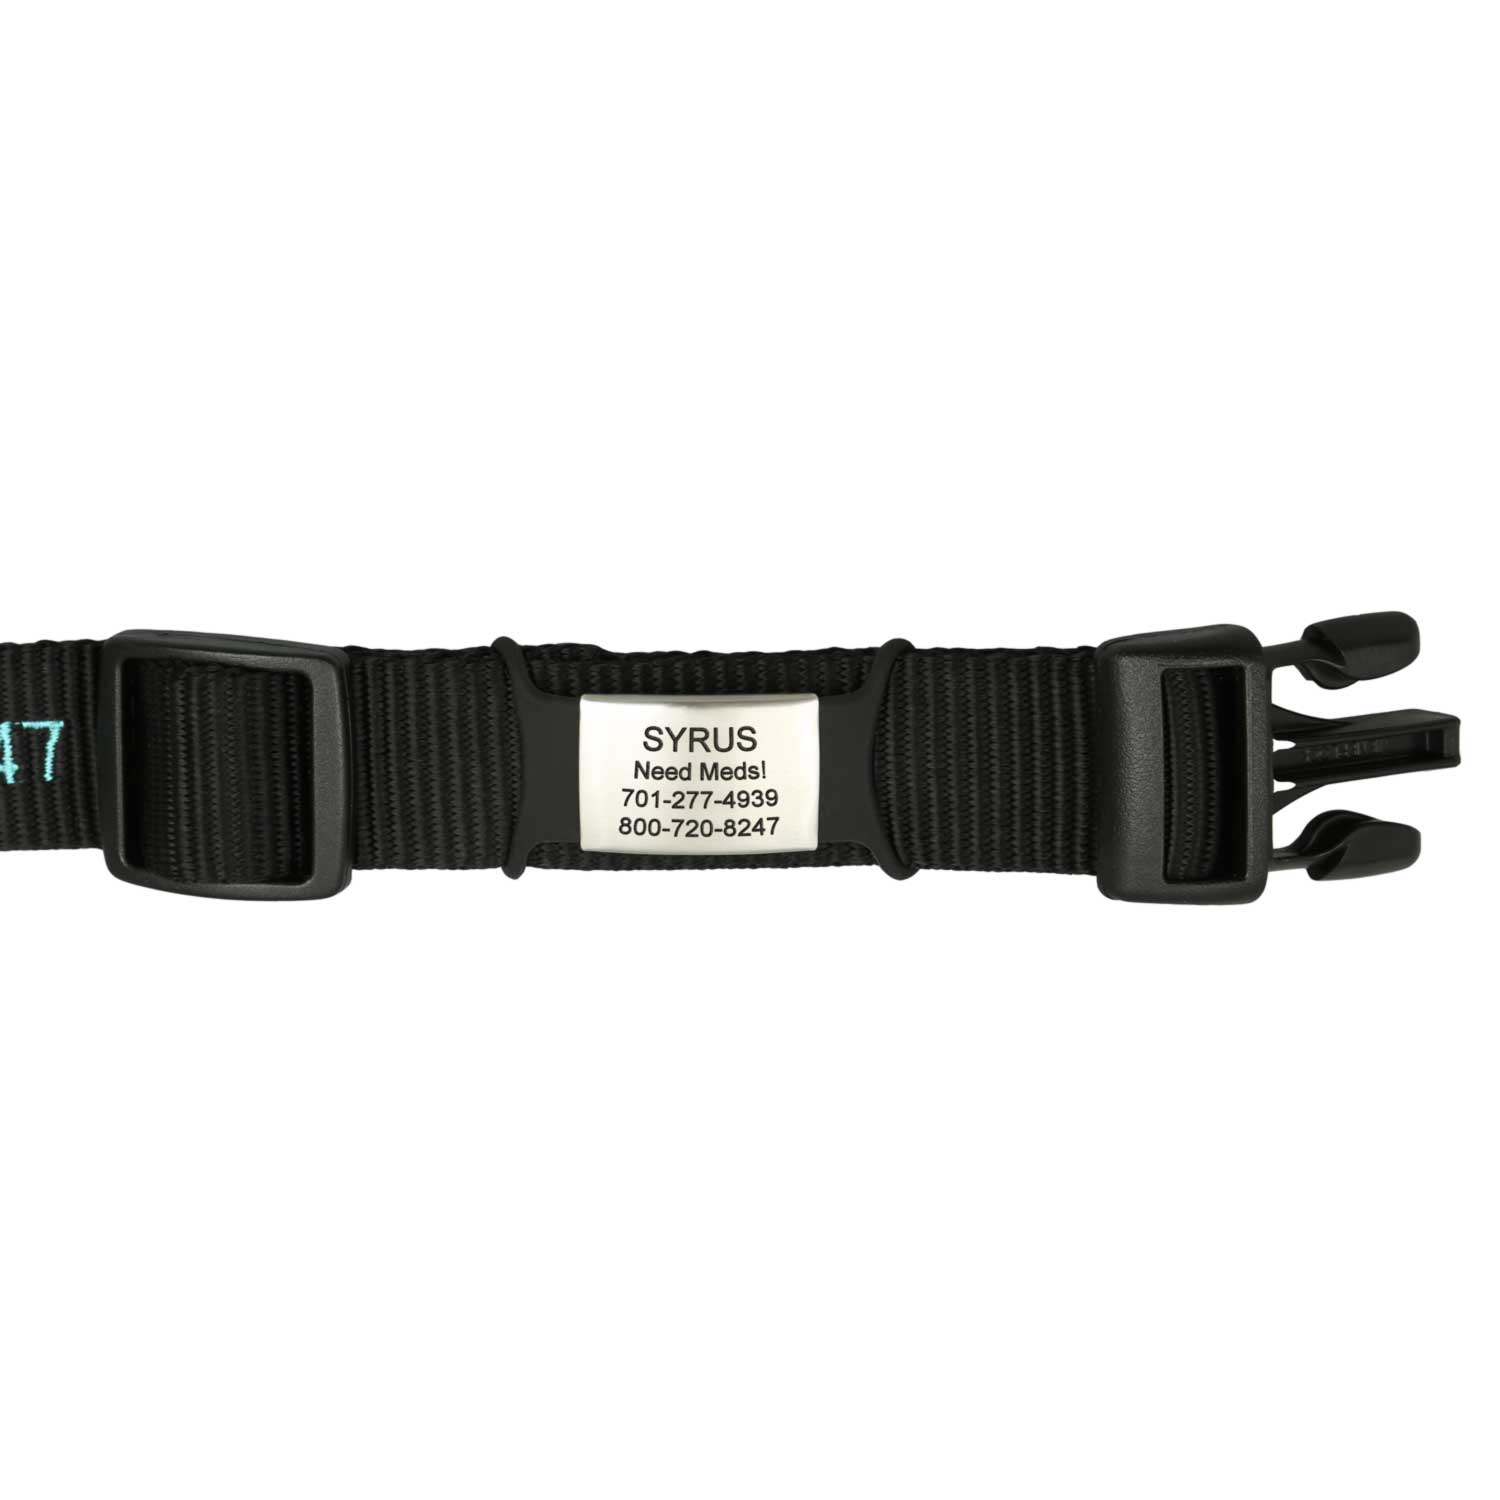 SleeveTag Name Plate with Silicone Strap on Nylon Collar